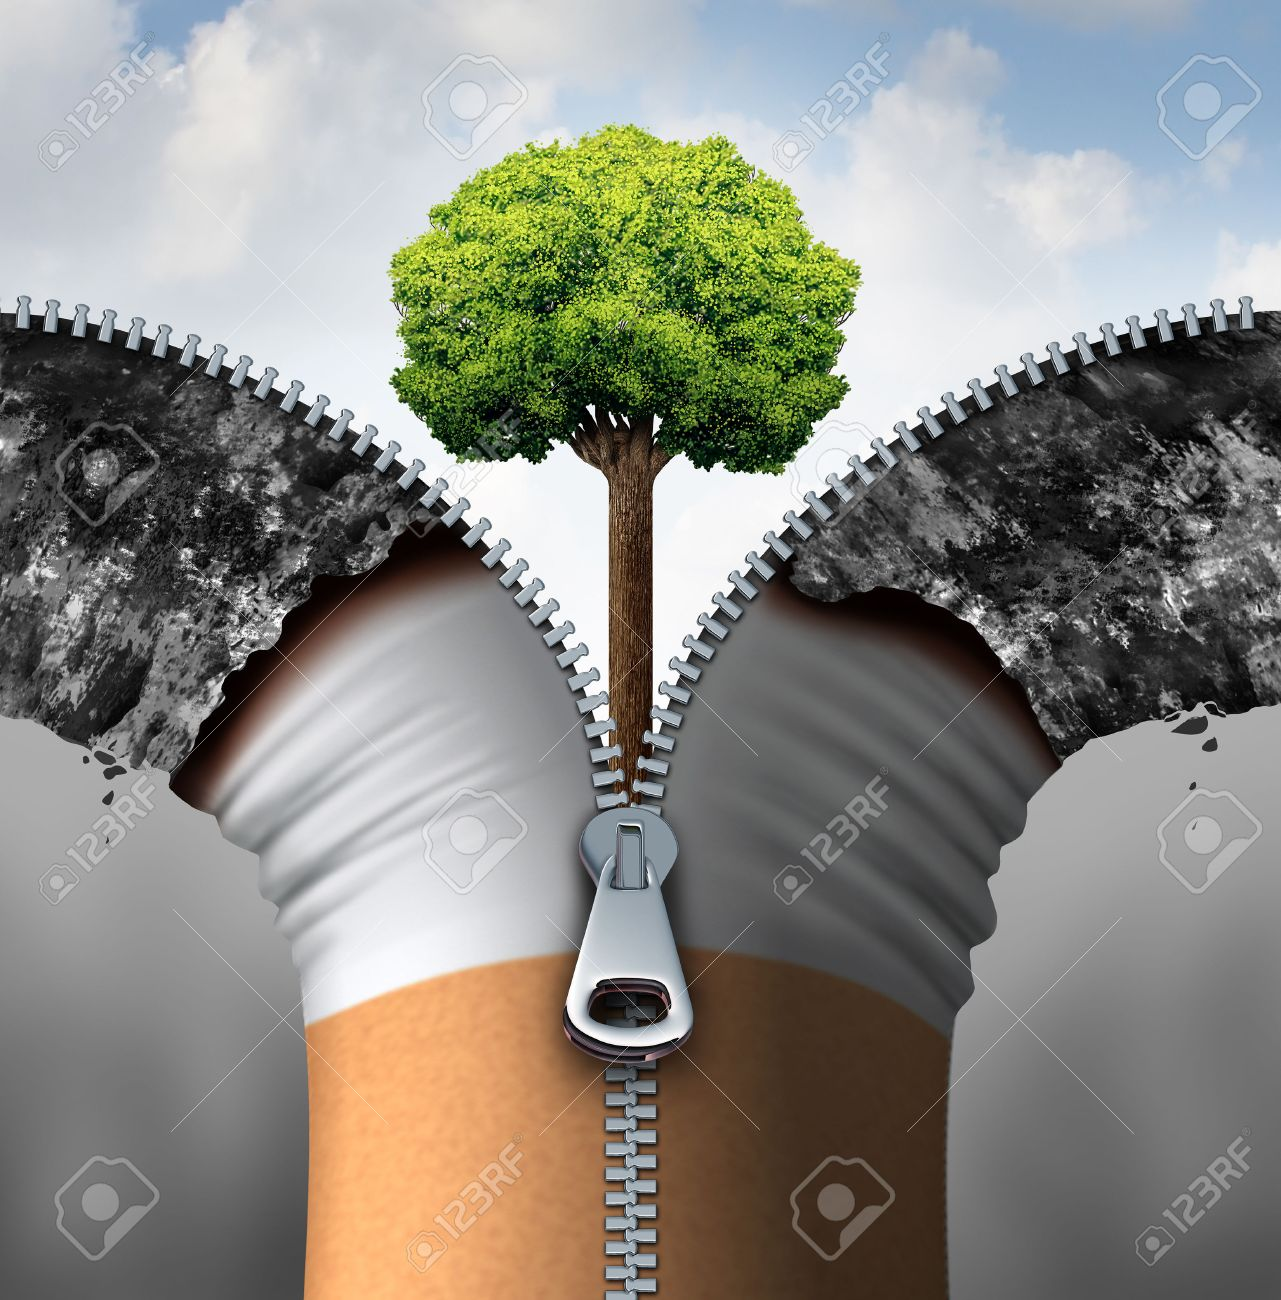 Cigarette concept and anti smoking symbol as a tobacco product opened with a 3D illustration zipper revealing a clean blue sky and healthy green tree growing as a health symbol for lifestyle change. - 54533131